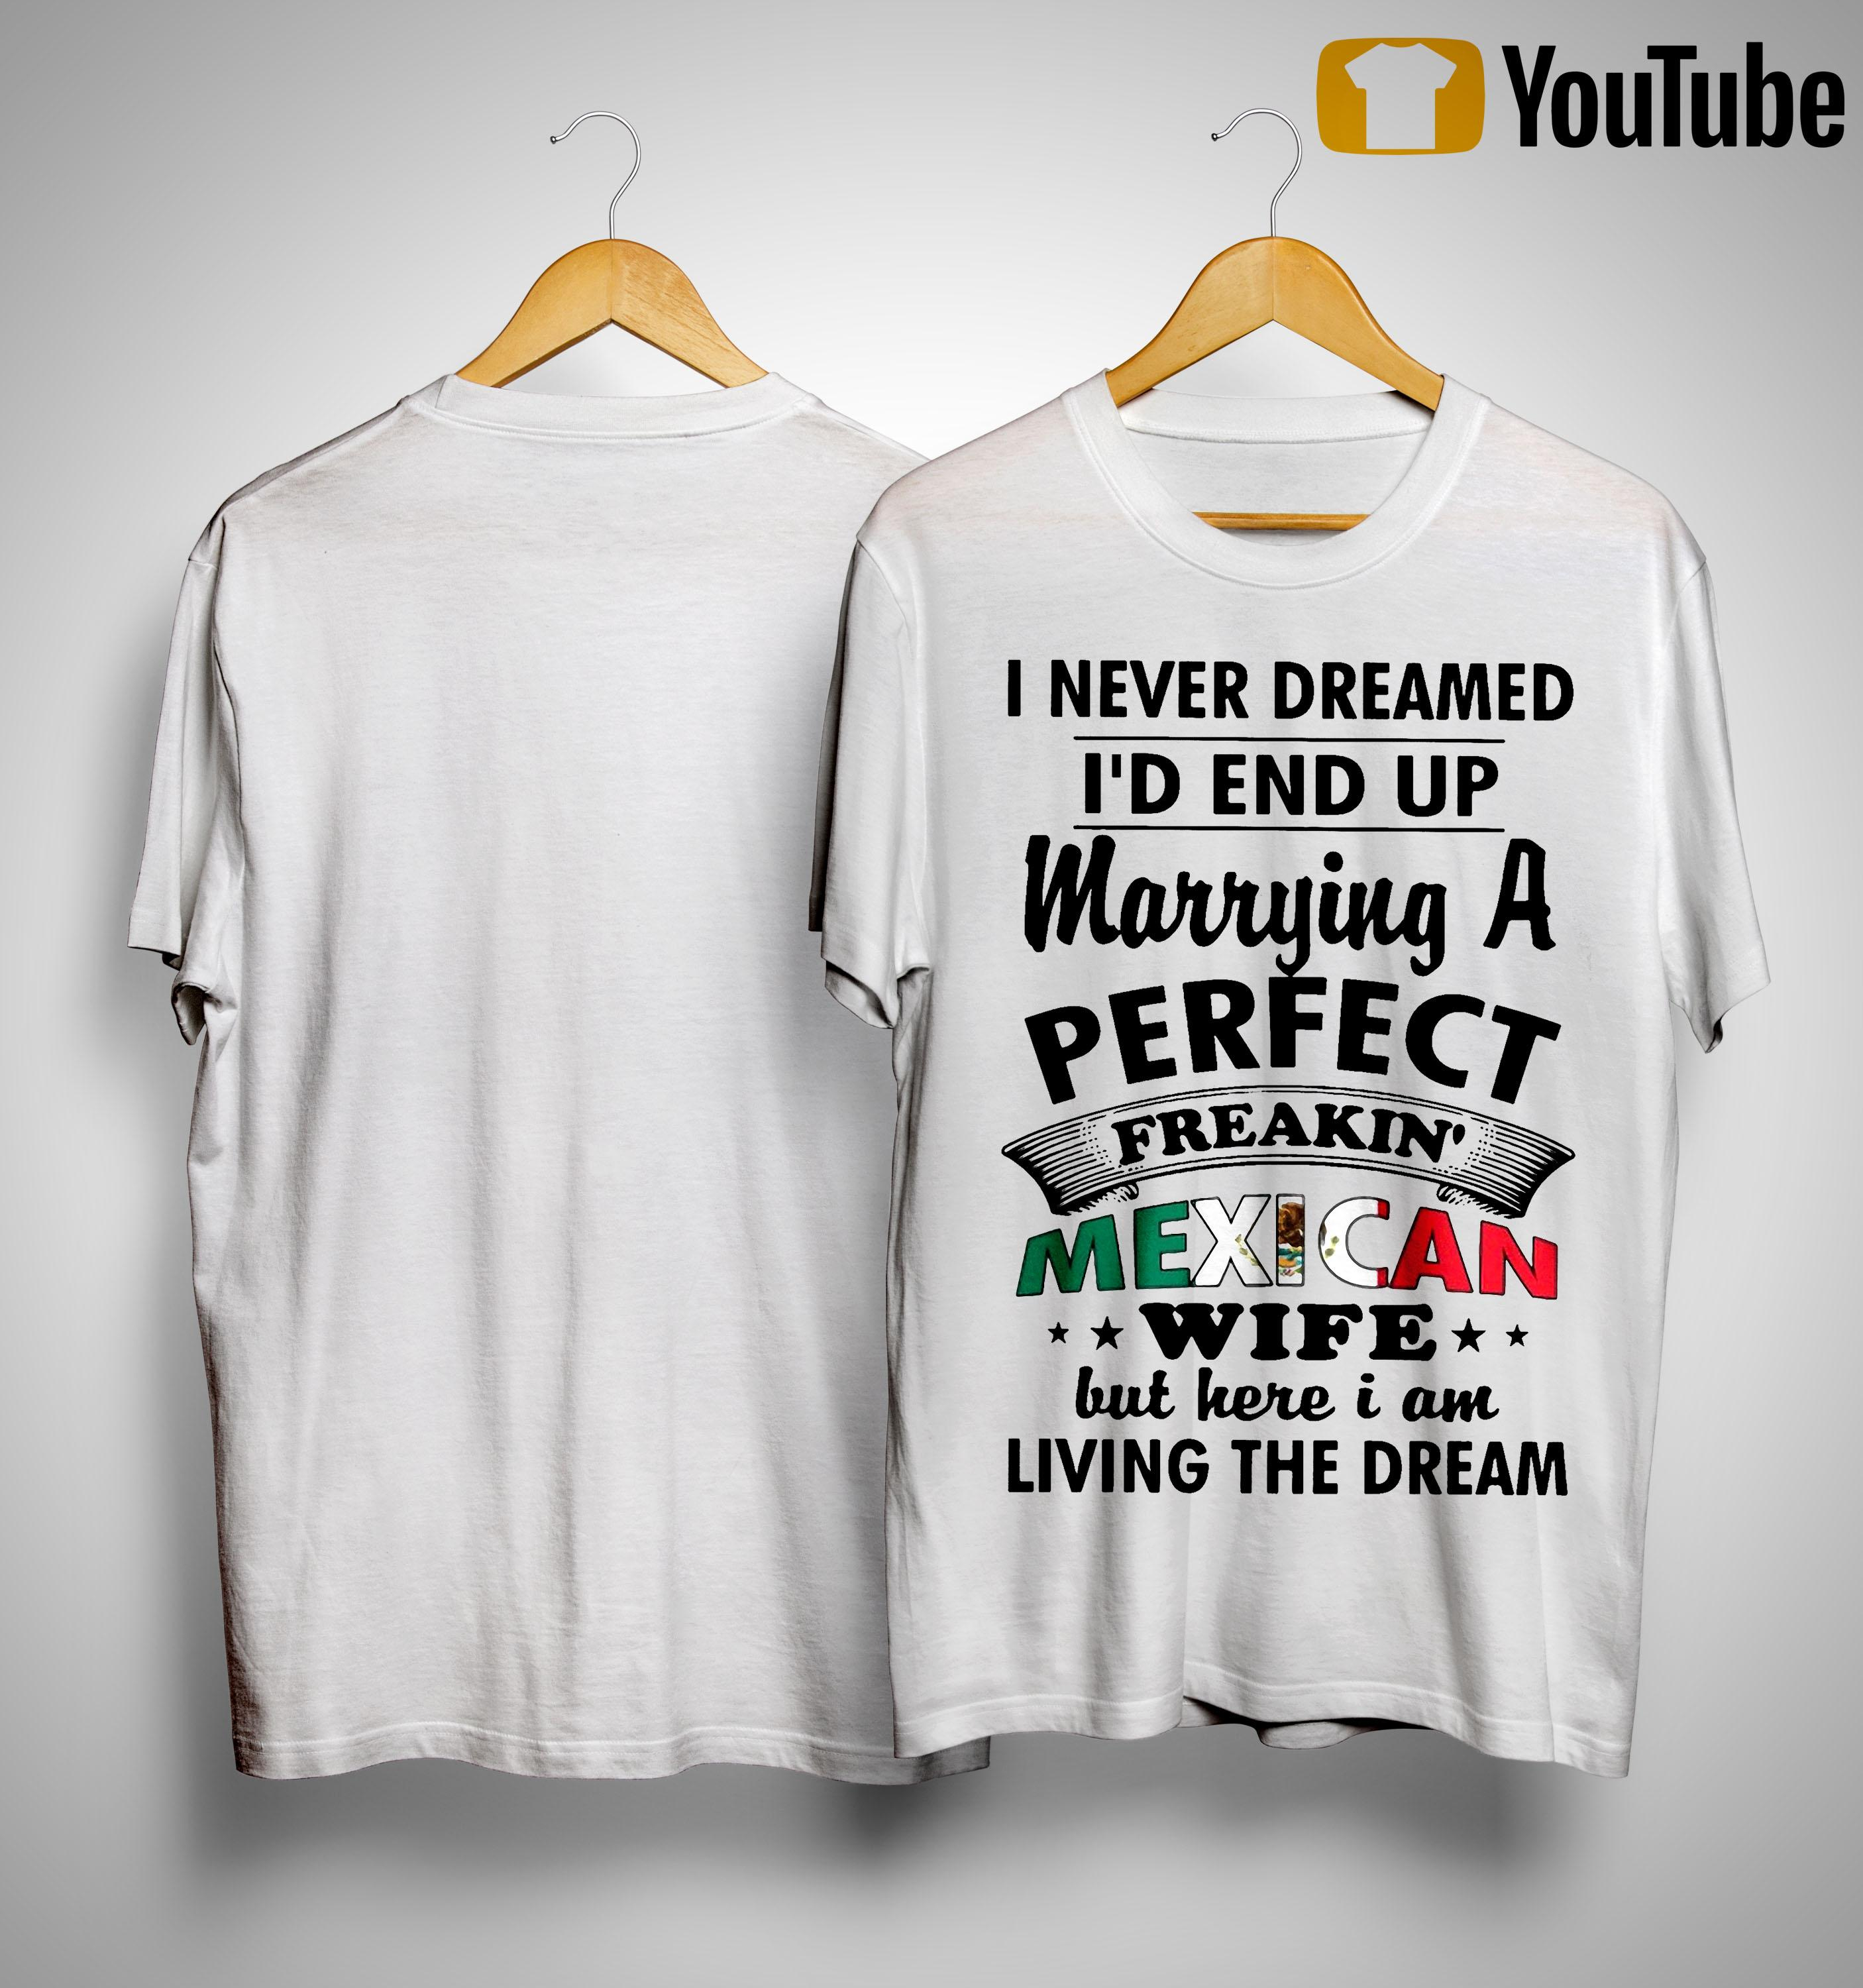 I Never Dreamed I'd End Up Marrying A Perfect Freakin' Mexican Wife Shirt